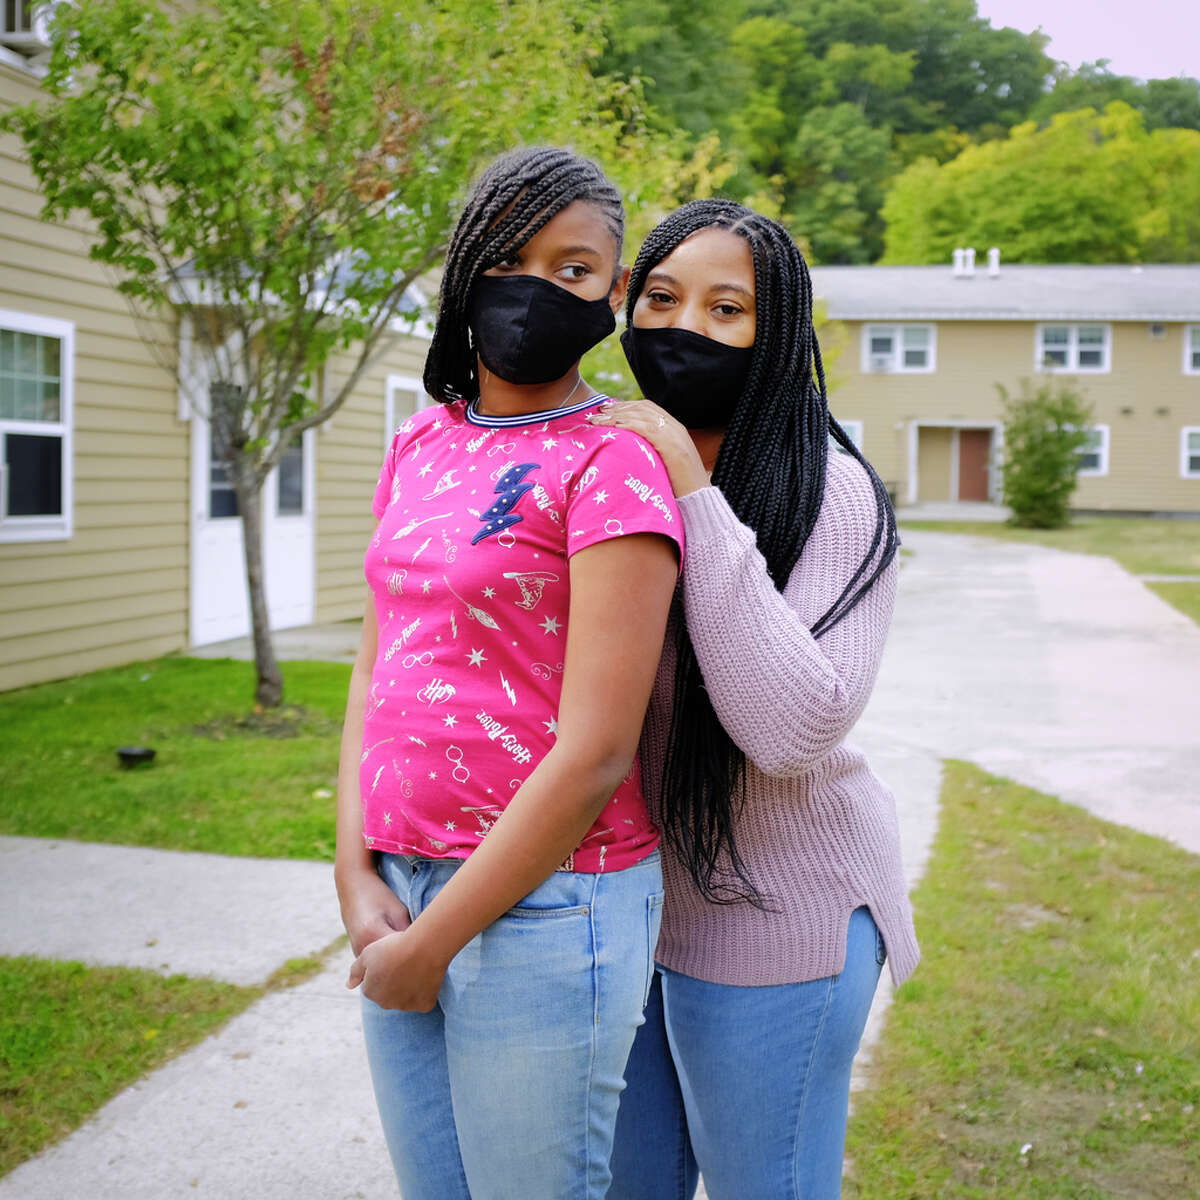 Akira Marshall, right, and her daughter, Damirah Corbitt, 12, outside their home on Thursday, Sept. 24, 2020, in Albany, N.Y. Corbitt is a home school coordinator at the Montessori Magnet School for the Albany School District. (Paul Buckowski/Times Union)